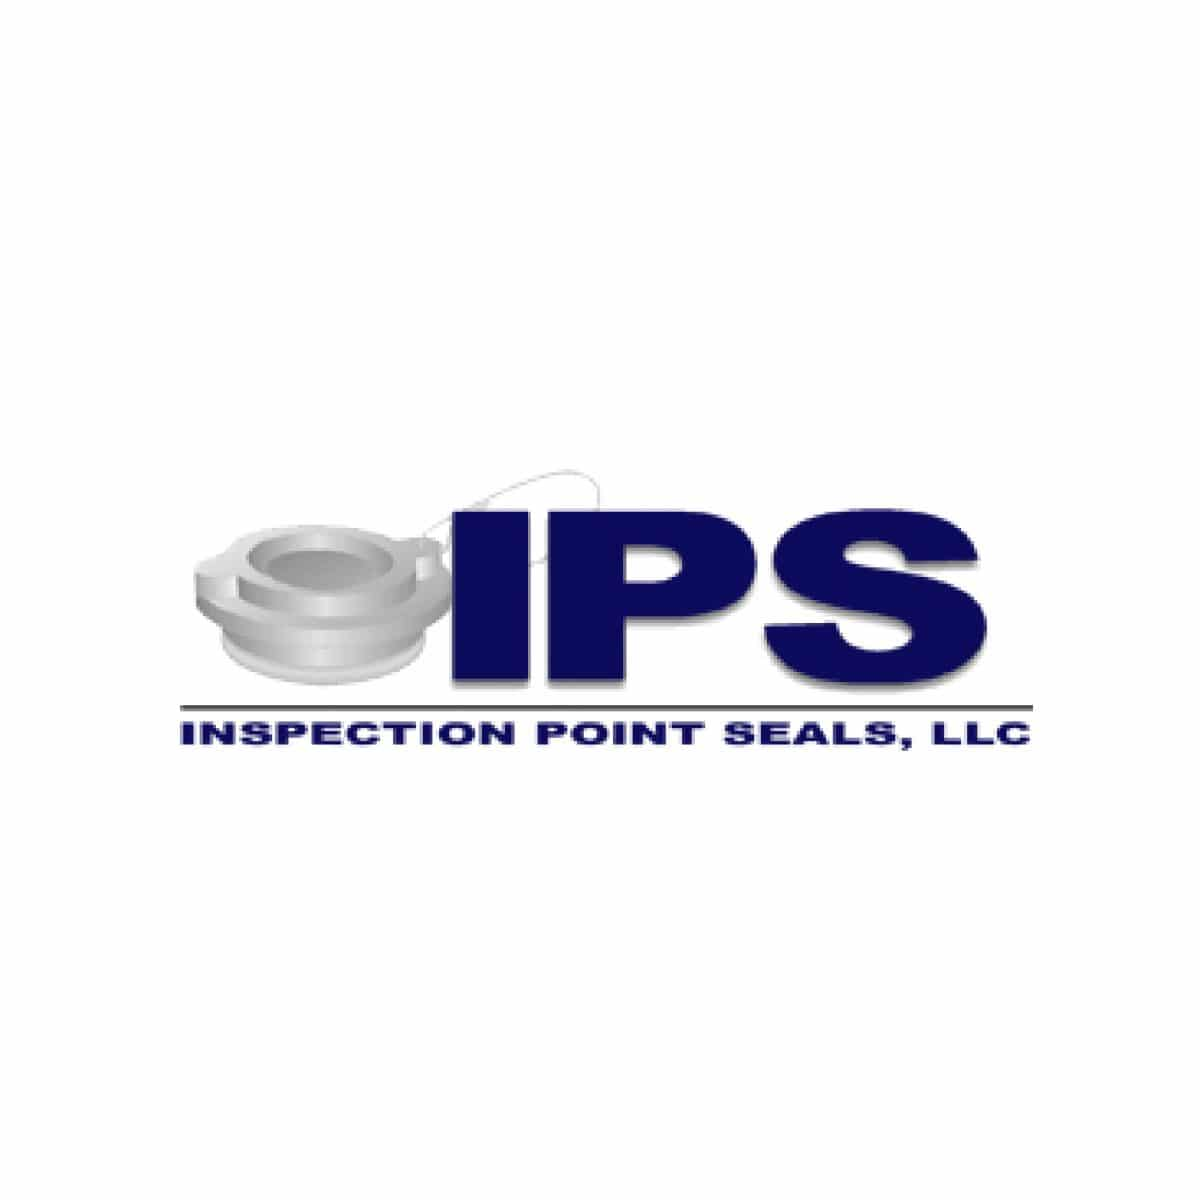 Inspection Point Seals